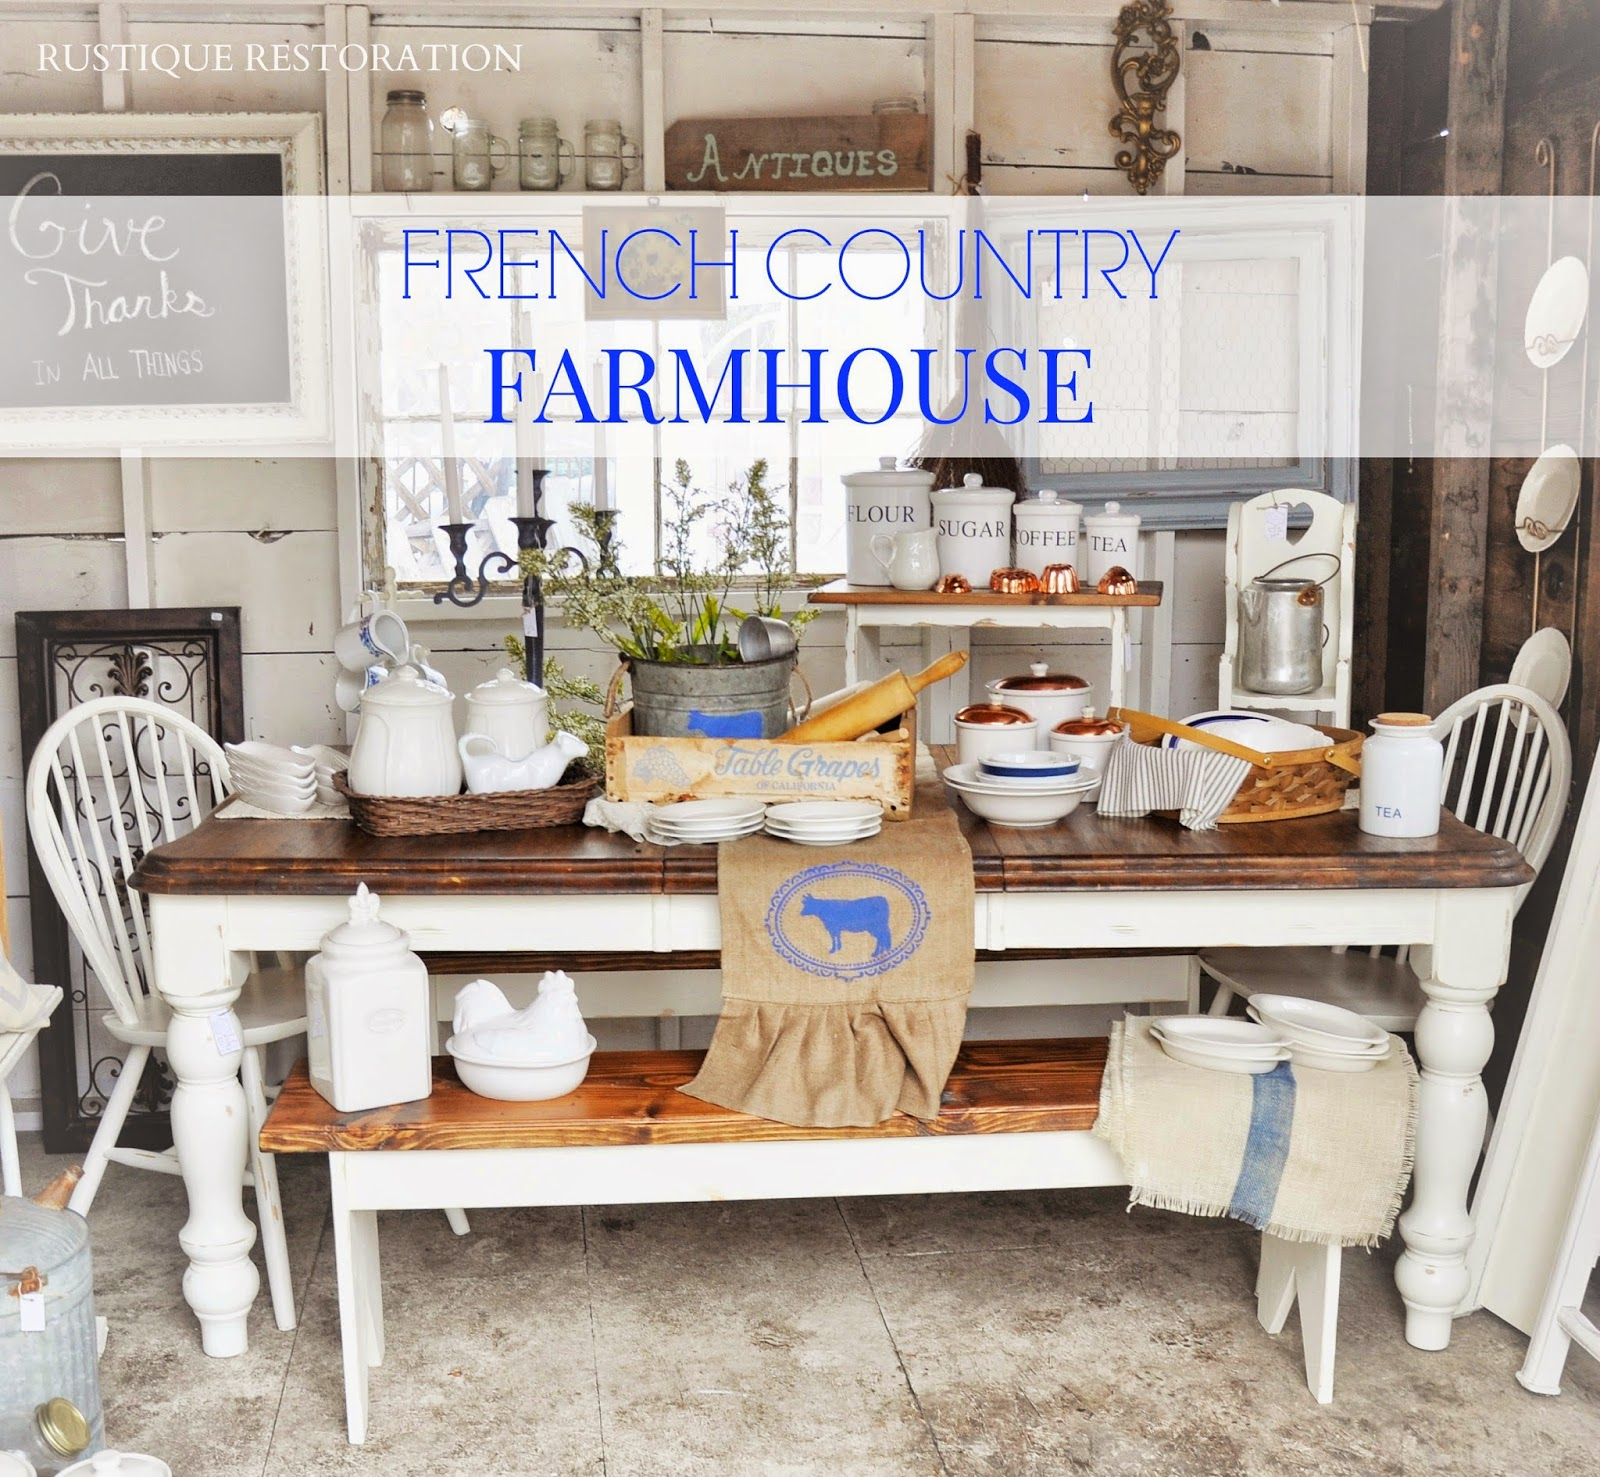 Rustique Restoration French Country Farmhouse Table And Decor